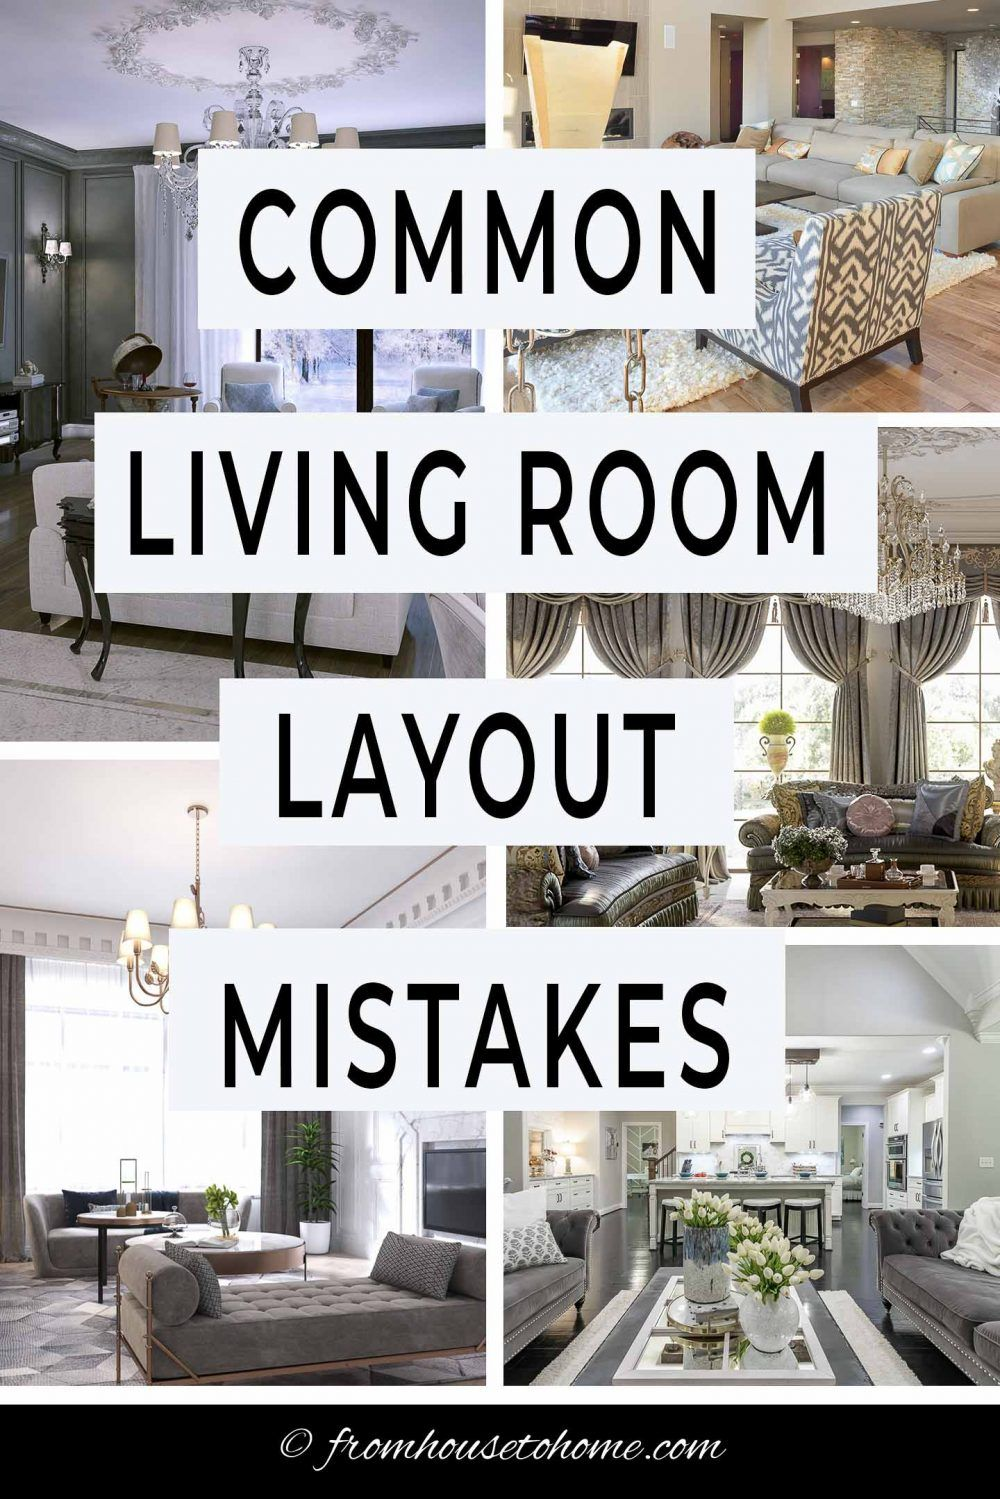 Living Room Layout Mistakes Do S And Don Ts For Furniture Arrangement In 2021 Livingroom Layout Room Layout Living Room Furniture Layout